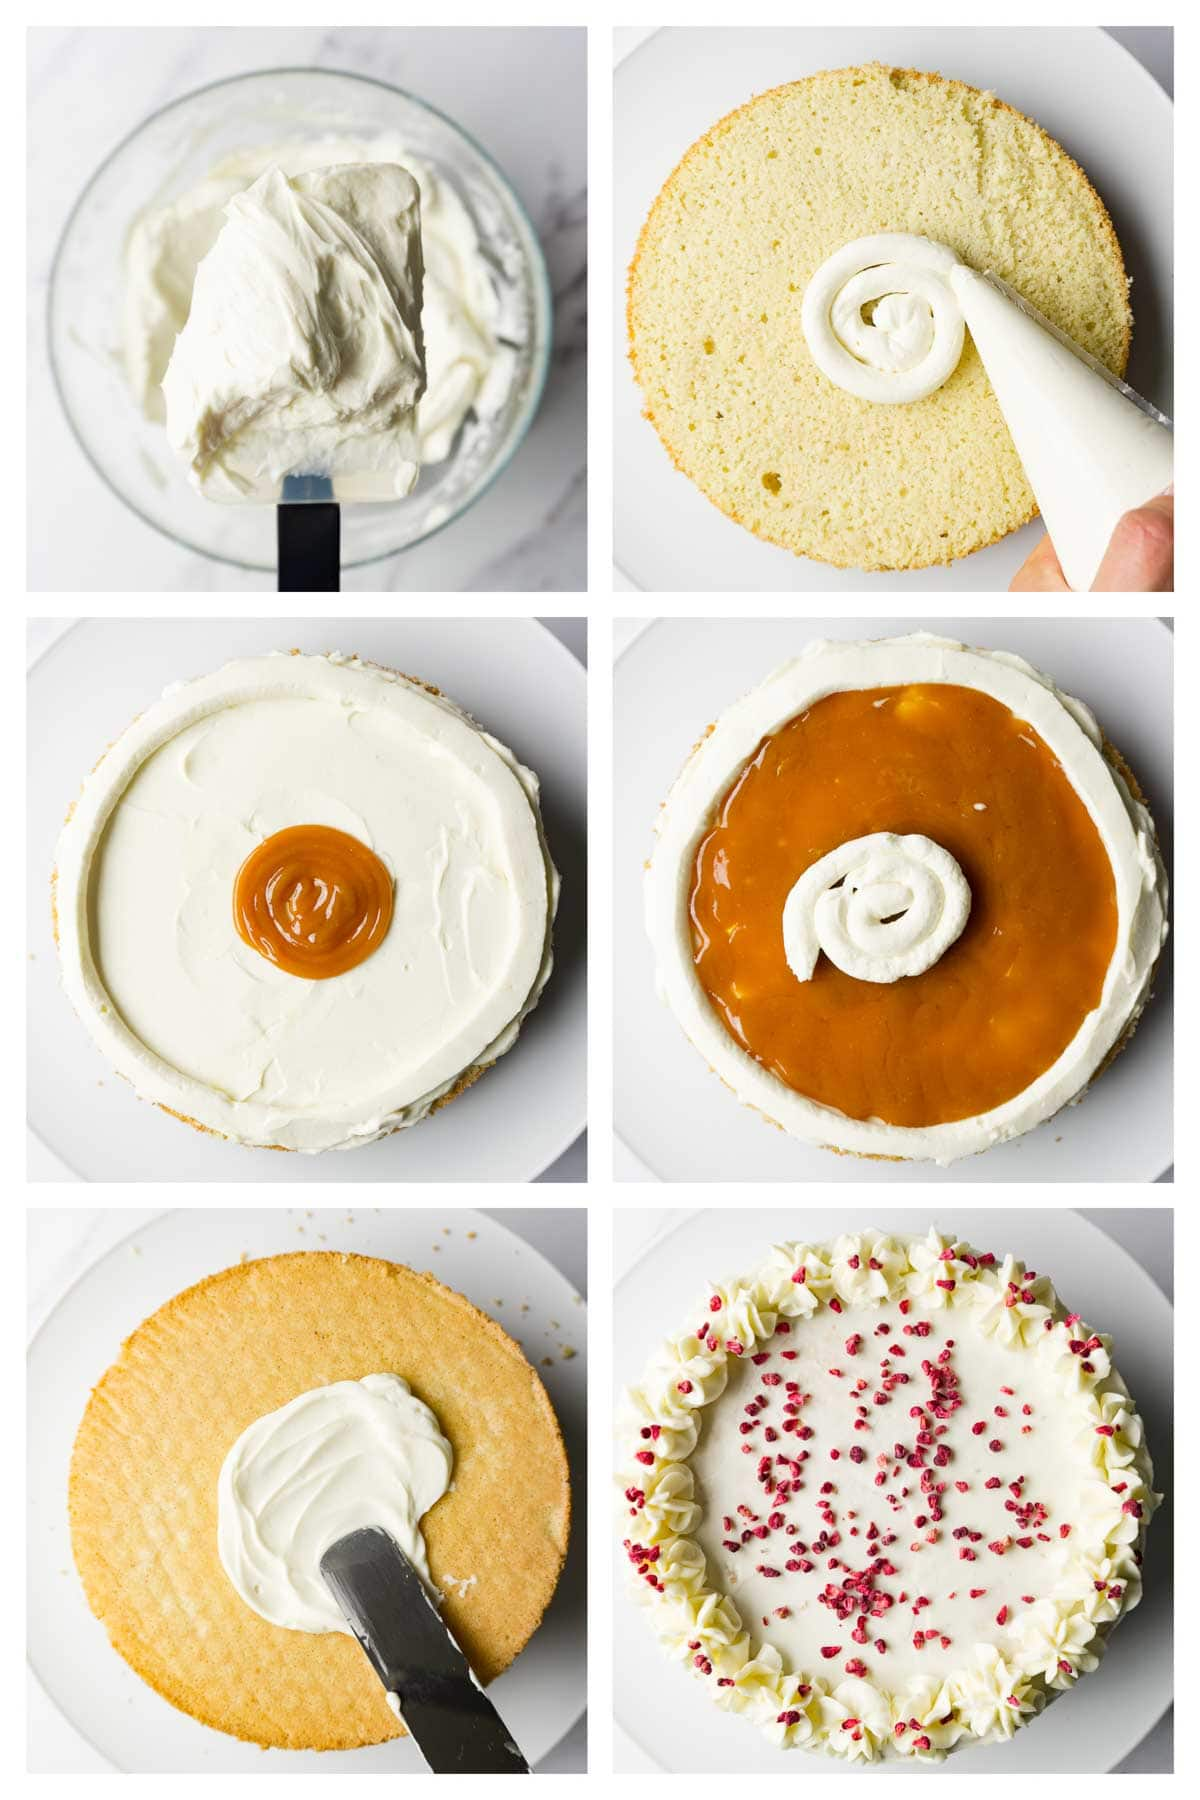 6 steps collage image showing how to assemble keto birthday cake.